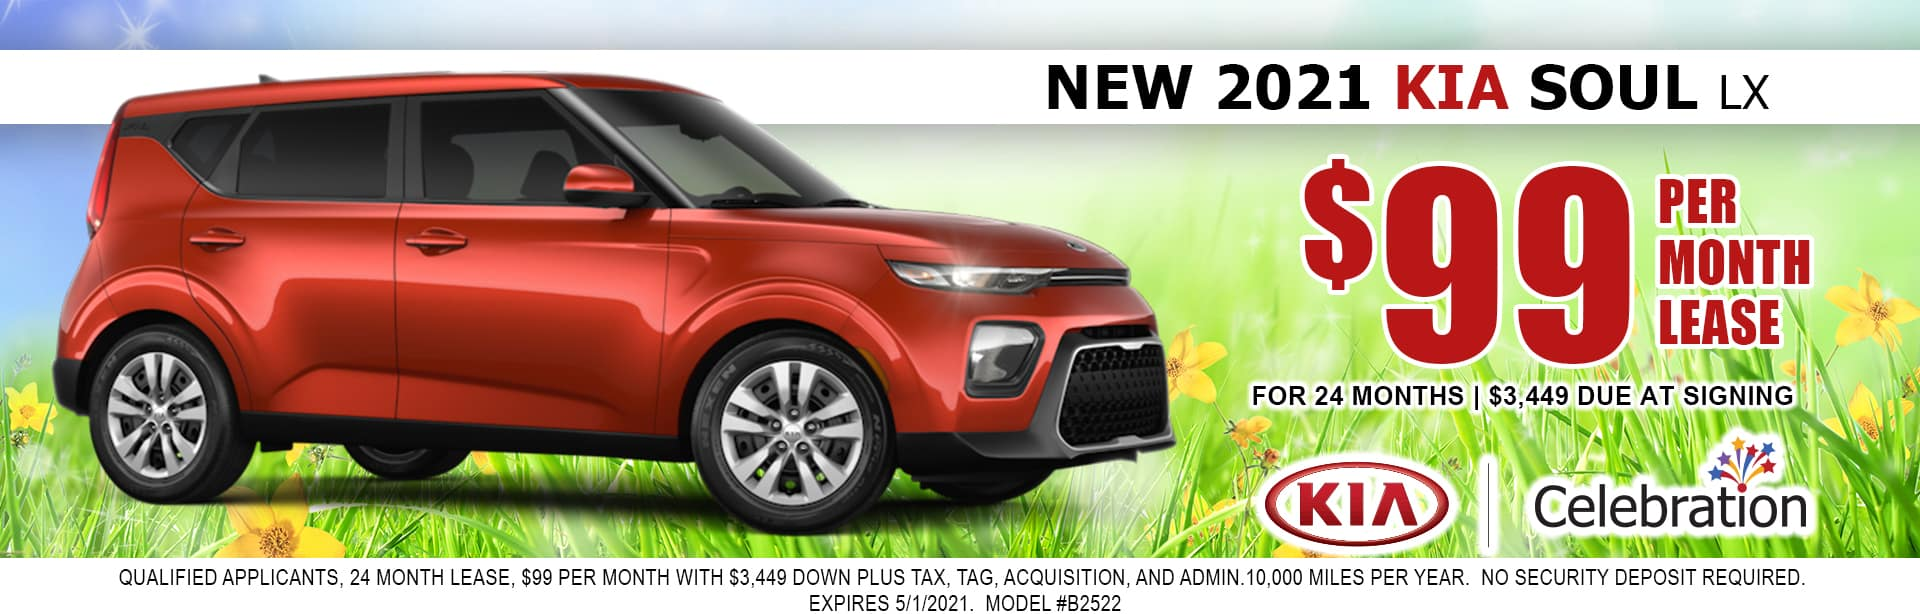 2021 Kia Soul lease for $99/mo